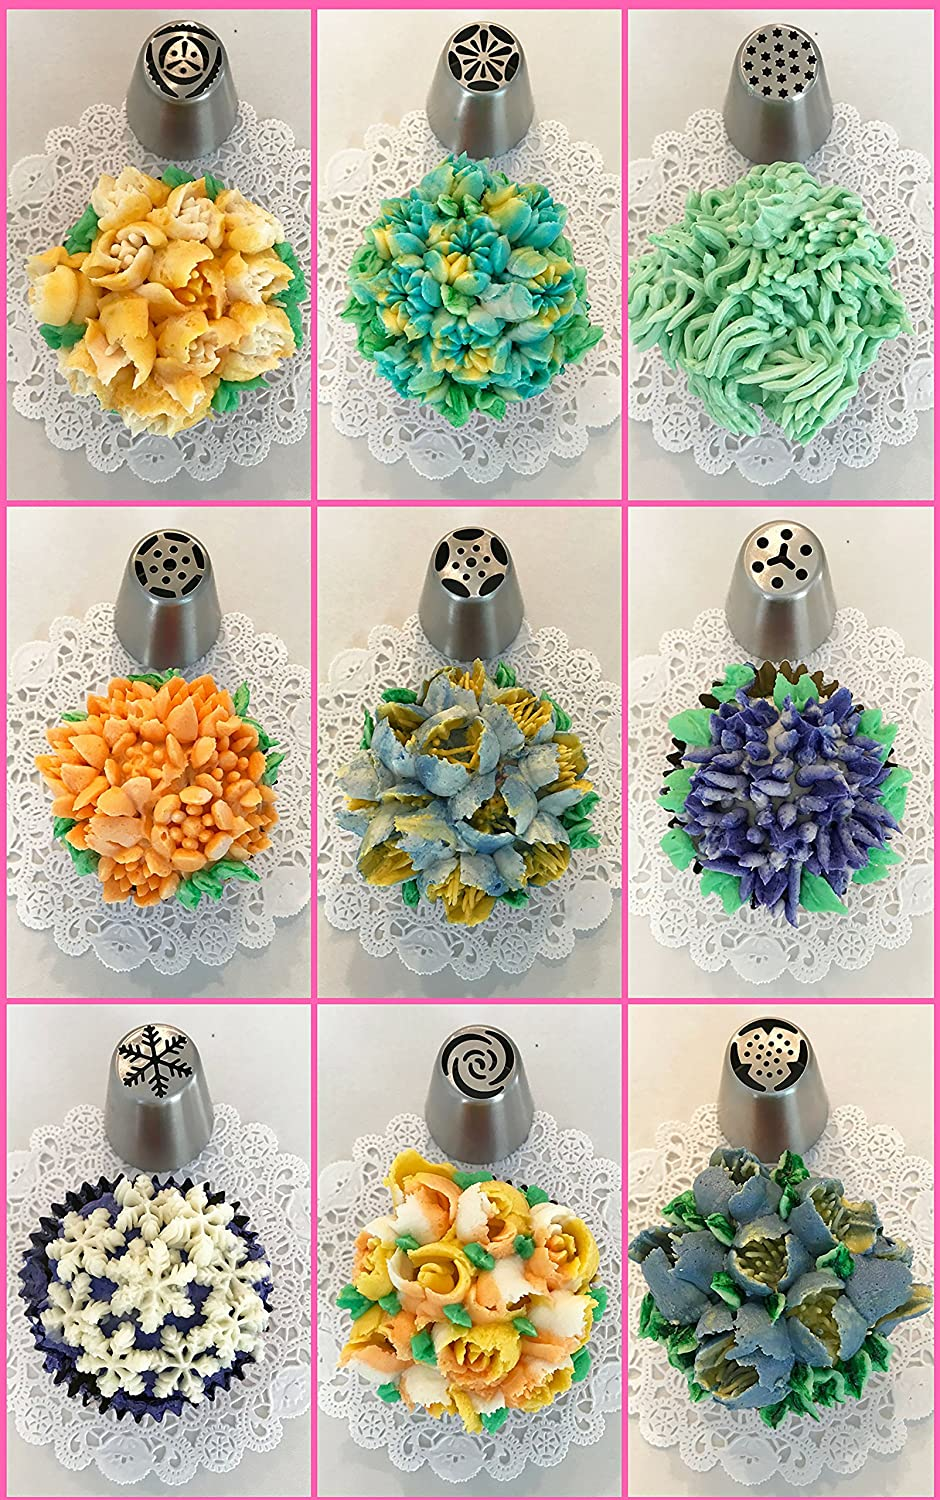 2 Leaf Tips 4 Couplers Decorate like a Pro with GoGo Pantry GoGo Sales 27 Large Russian Frosting Nozzles Cake Decorating Supplies 30 Pastry Bags 65 pc Russian Piping Tips Set 2 Ball Tips